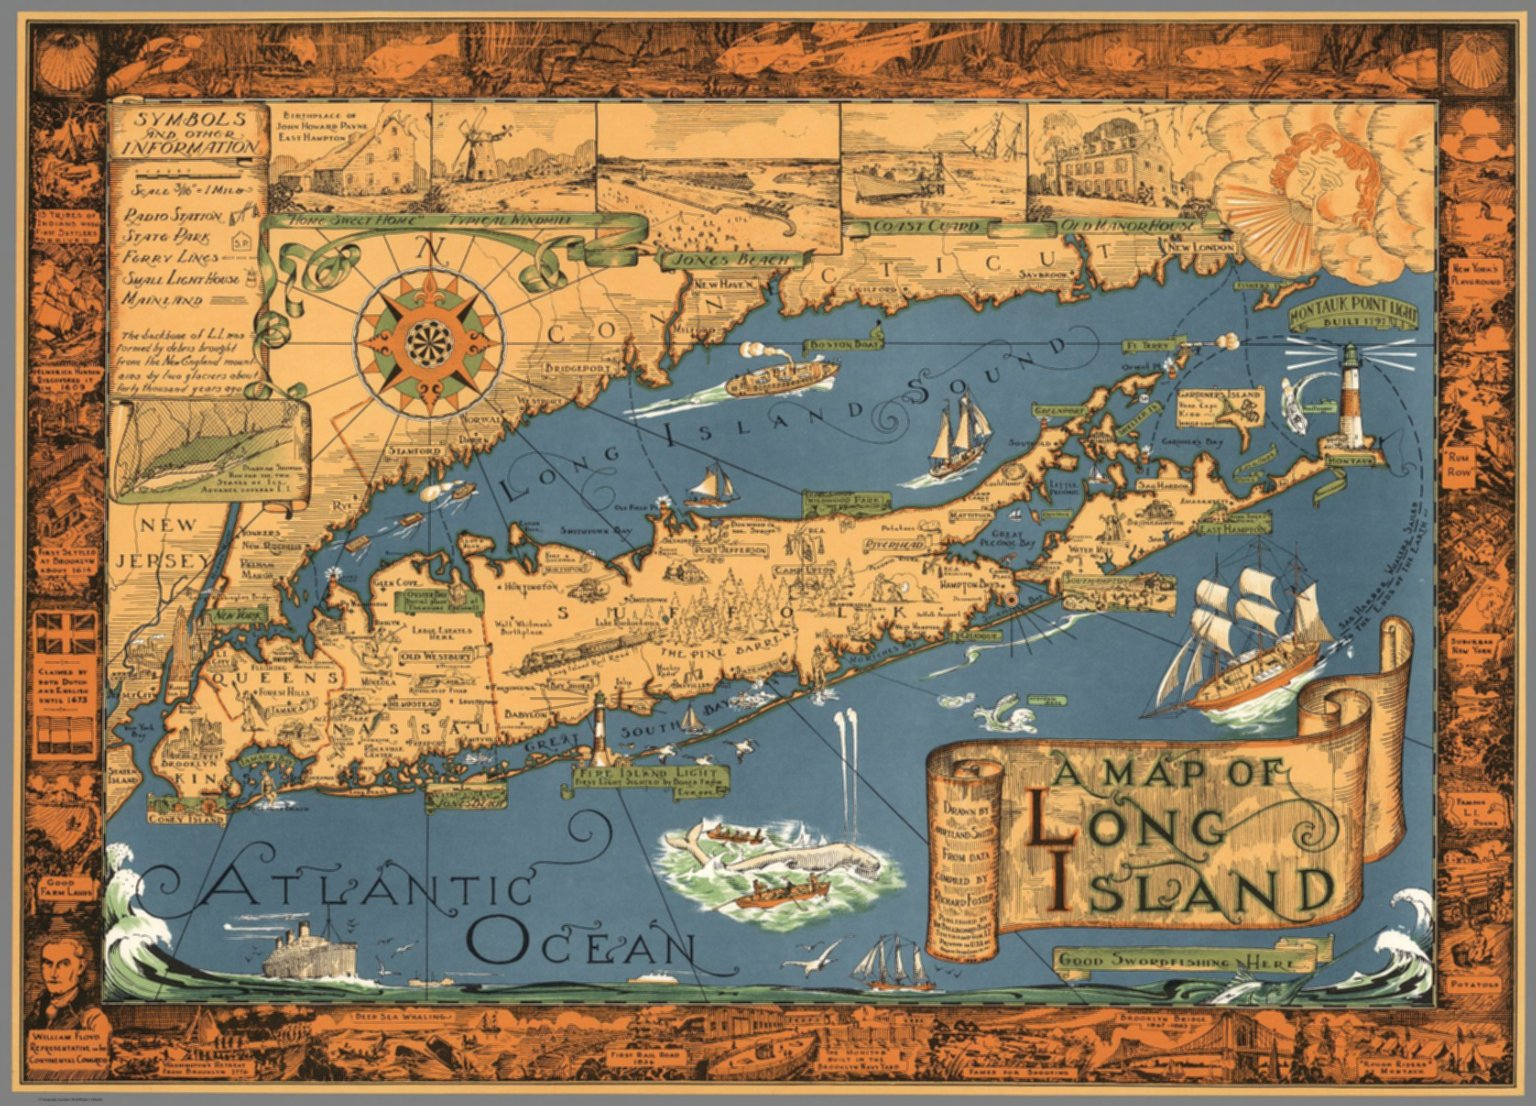 Map Of New York And Long Island.A Map Of Long Island Drawn By Courtland Smith From Data Compiled By